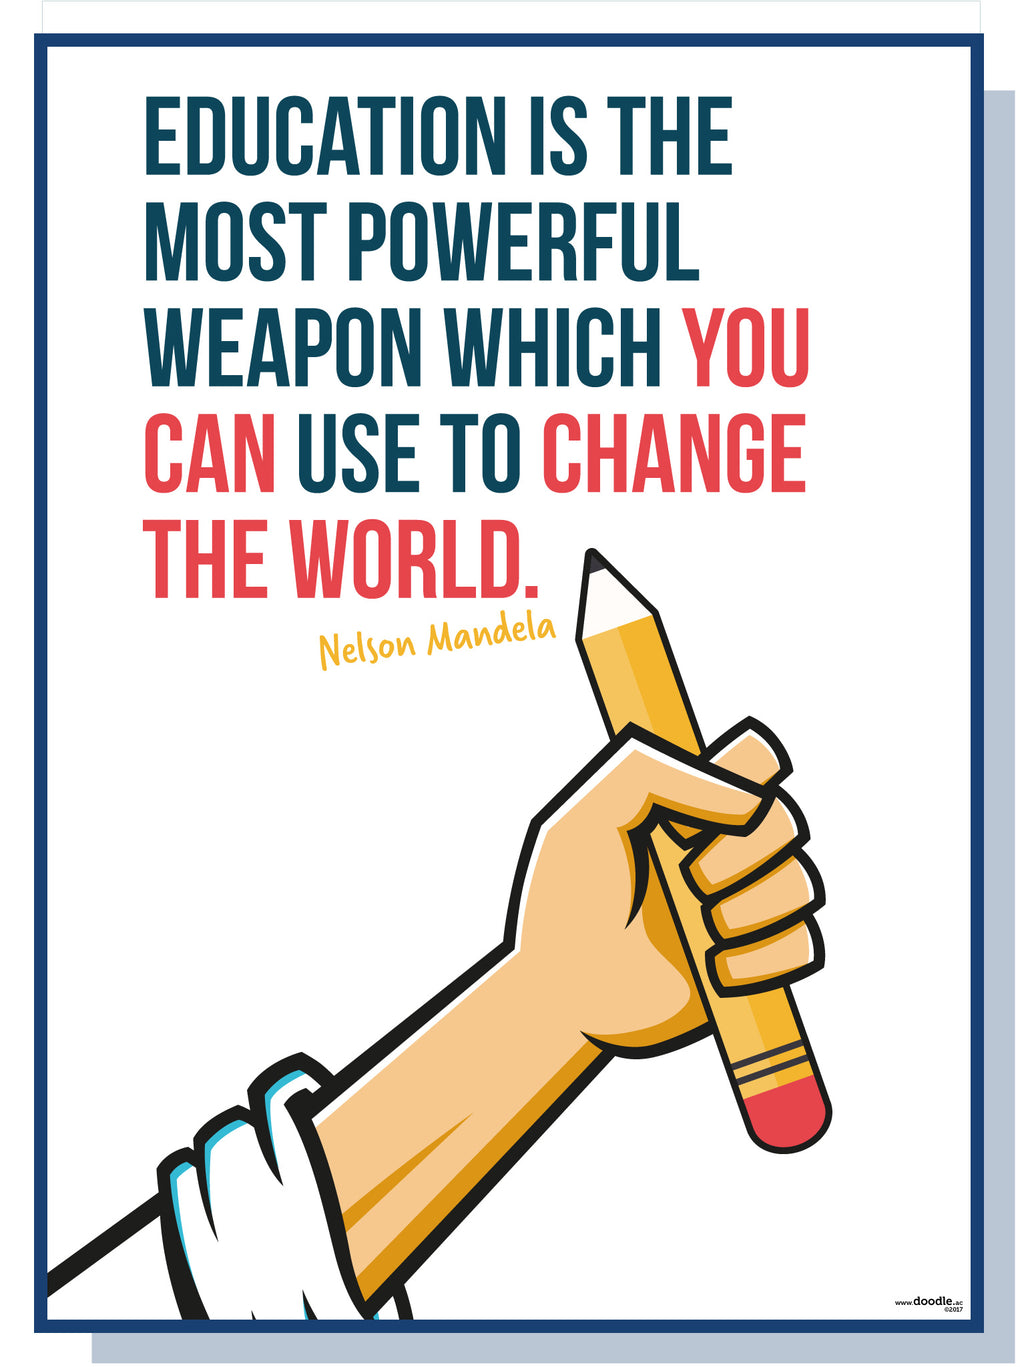 Education is power...